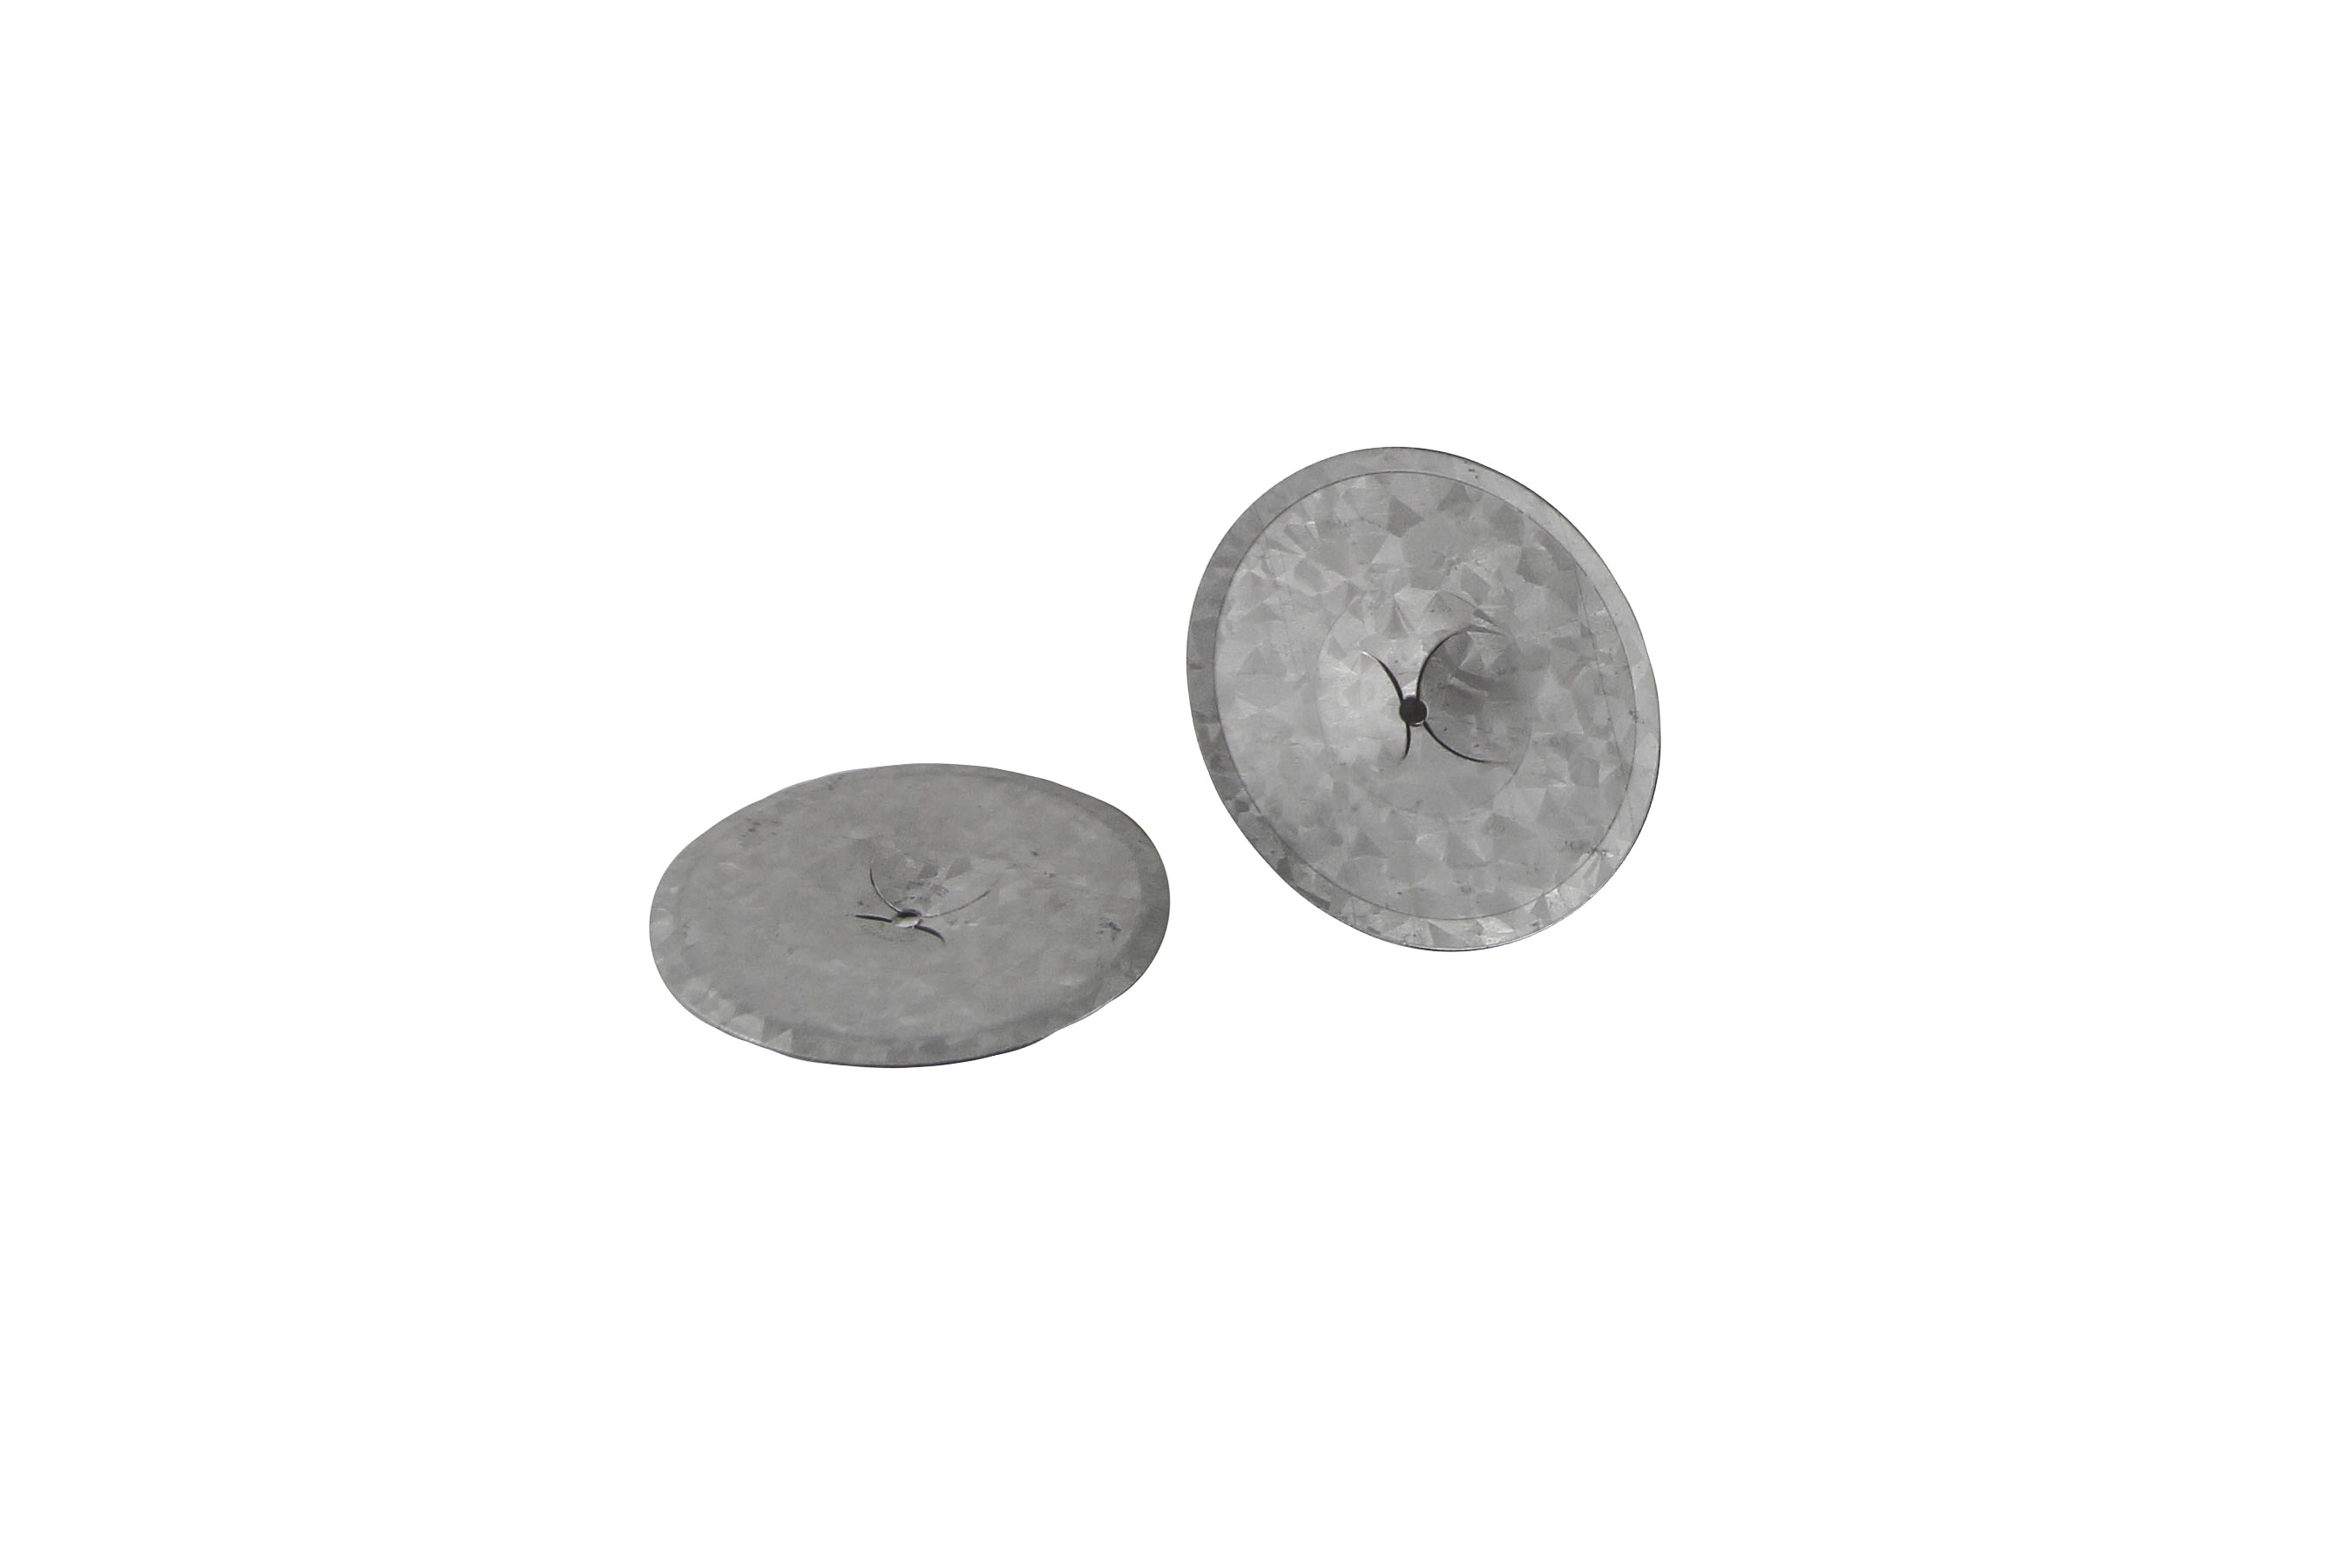 Safety disc CL-1-40 - 38 mm